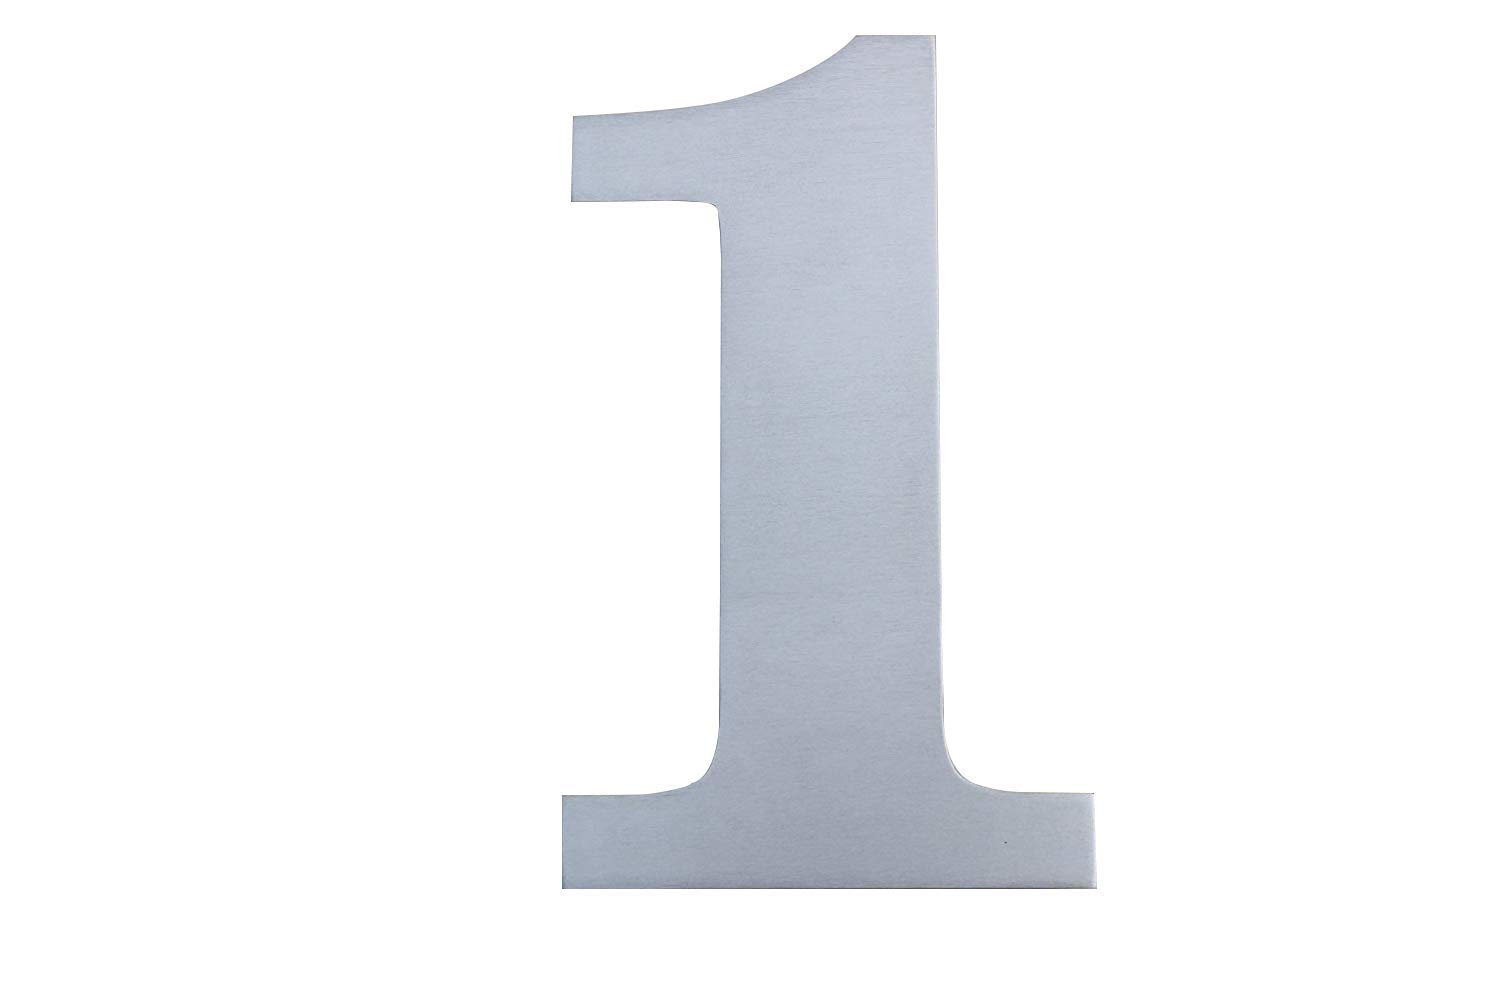 Fly Mida 8inch- House Number-304 Brushed Stainless Steel,Floating Appearance and Easy to Install (Number-1)